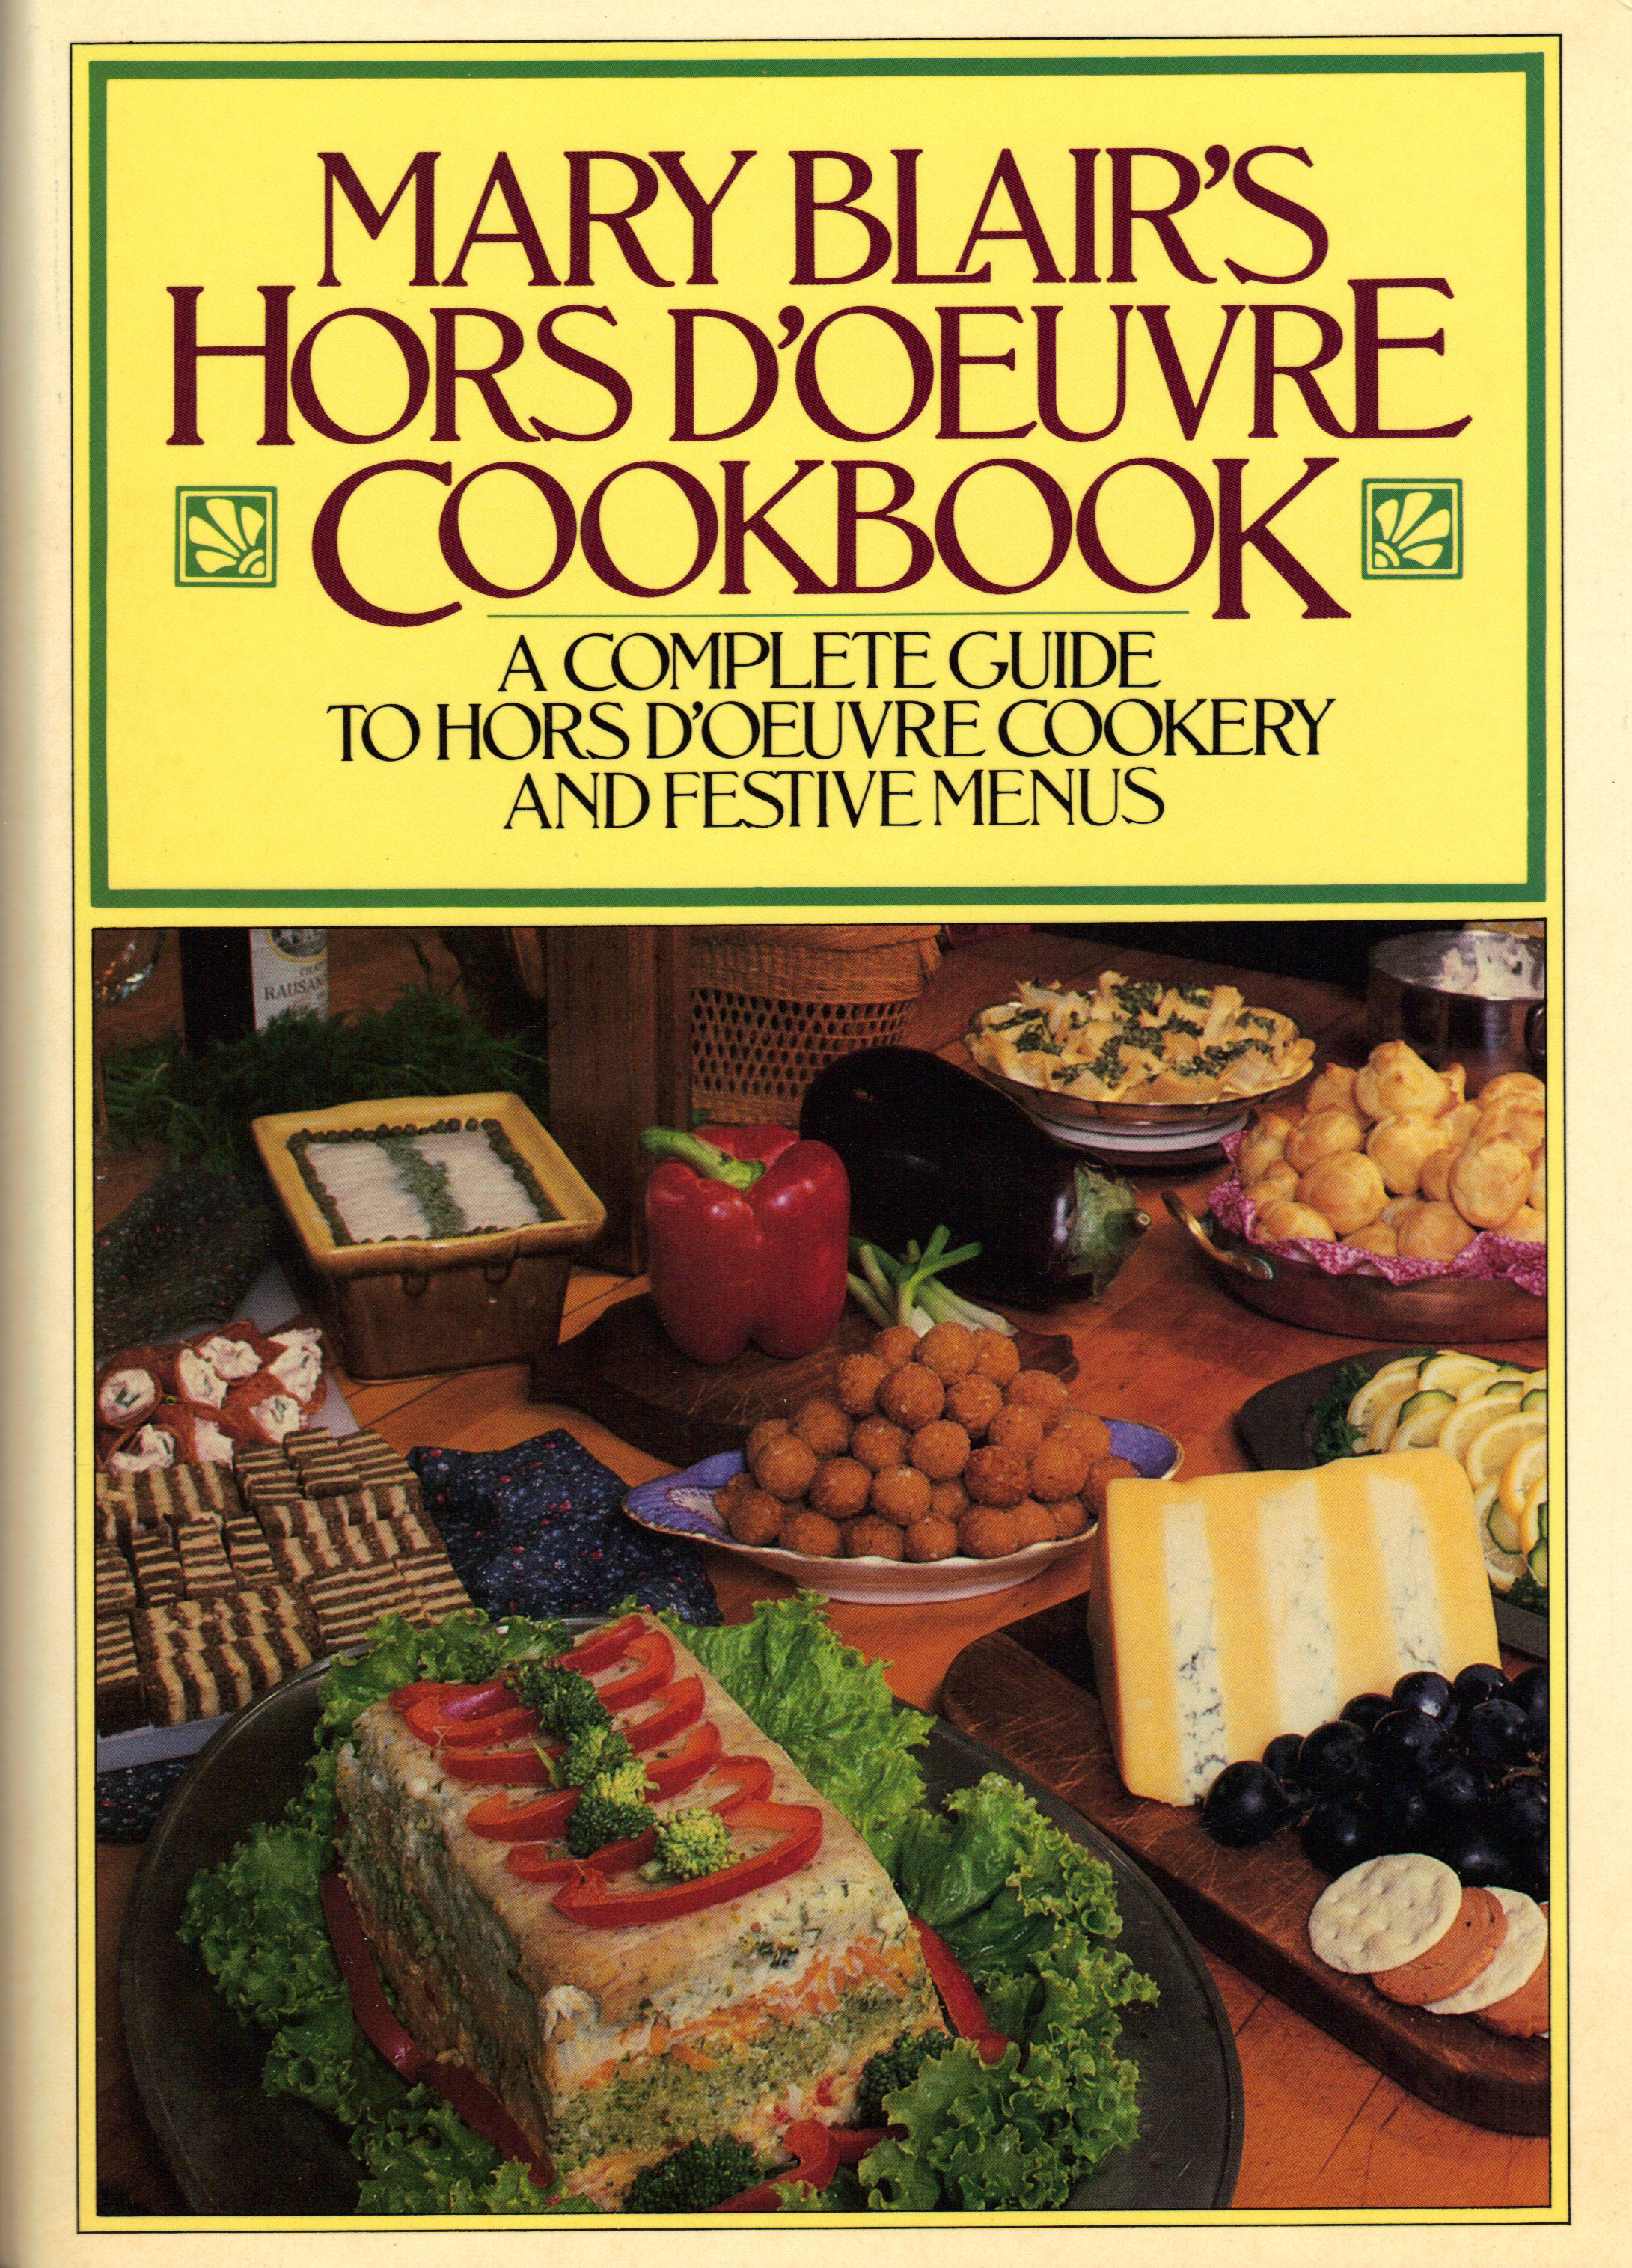 Image for MARY BLAIR'S HORS D'OEUVRE COOKBOOK